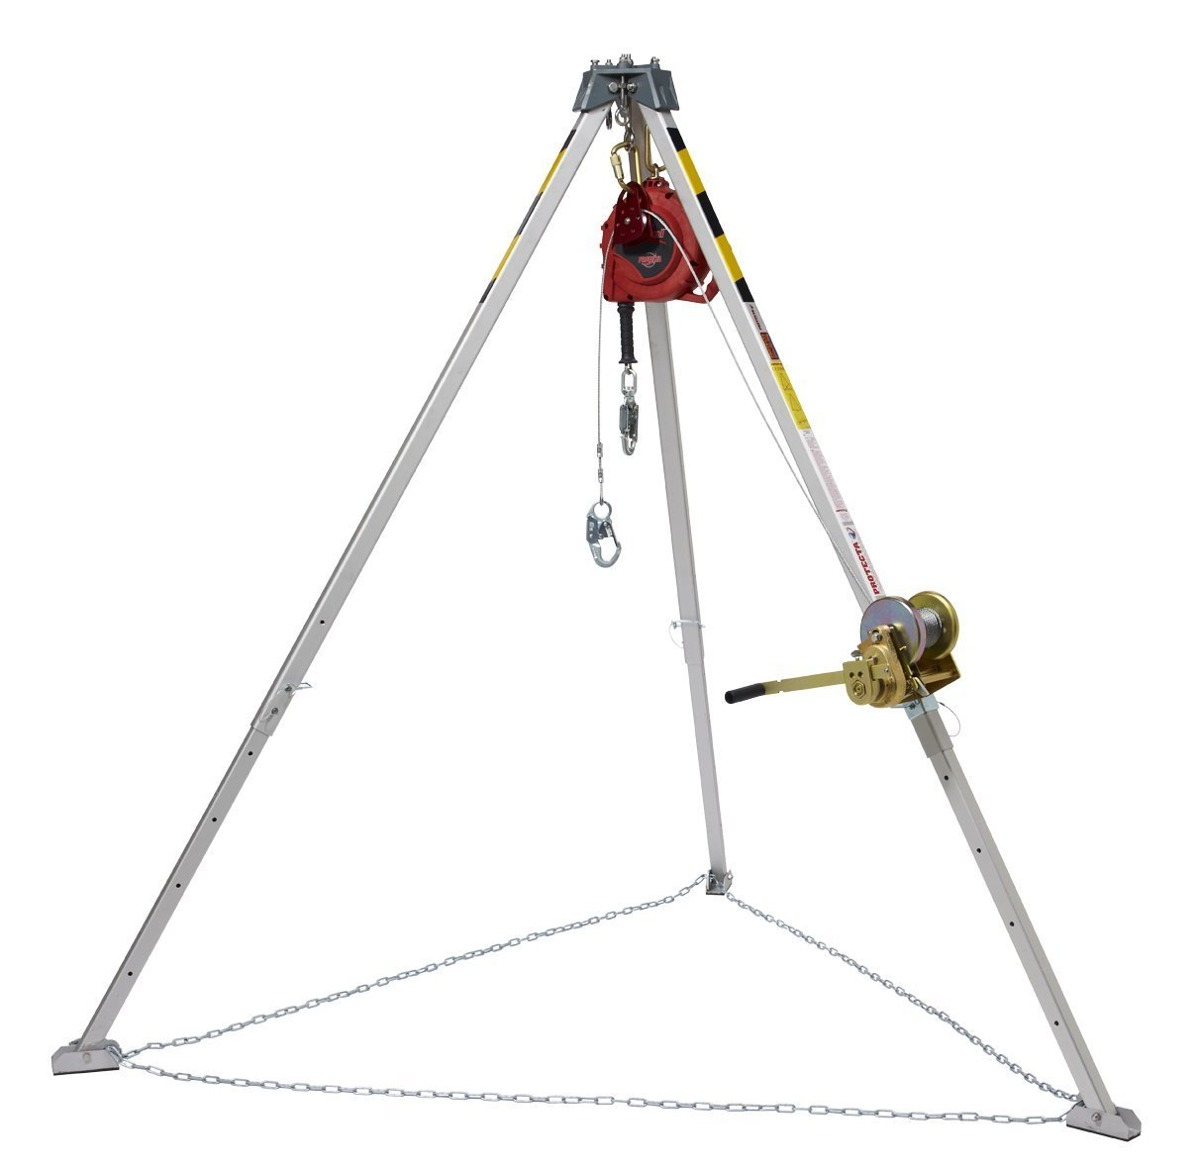 3m Protecta Pro Aa805ag1 Confined Space System Kit With 8